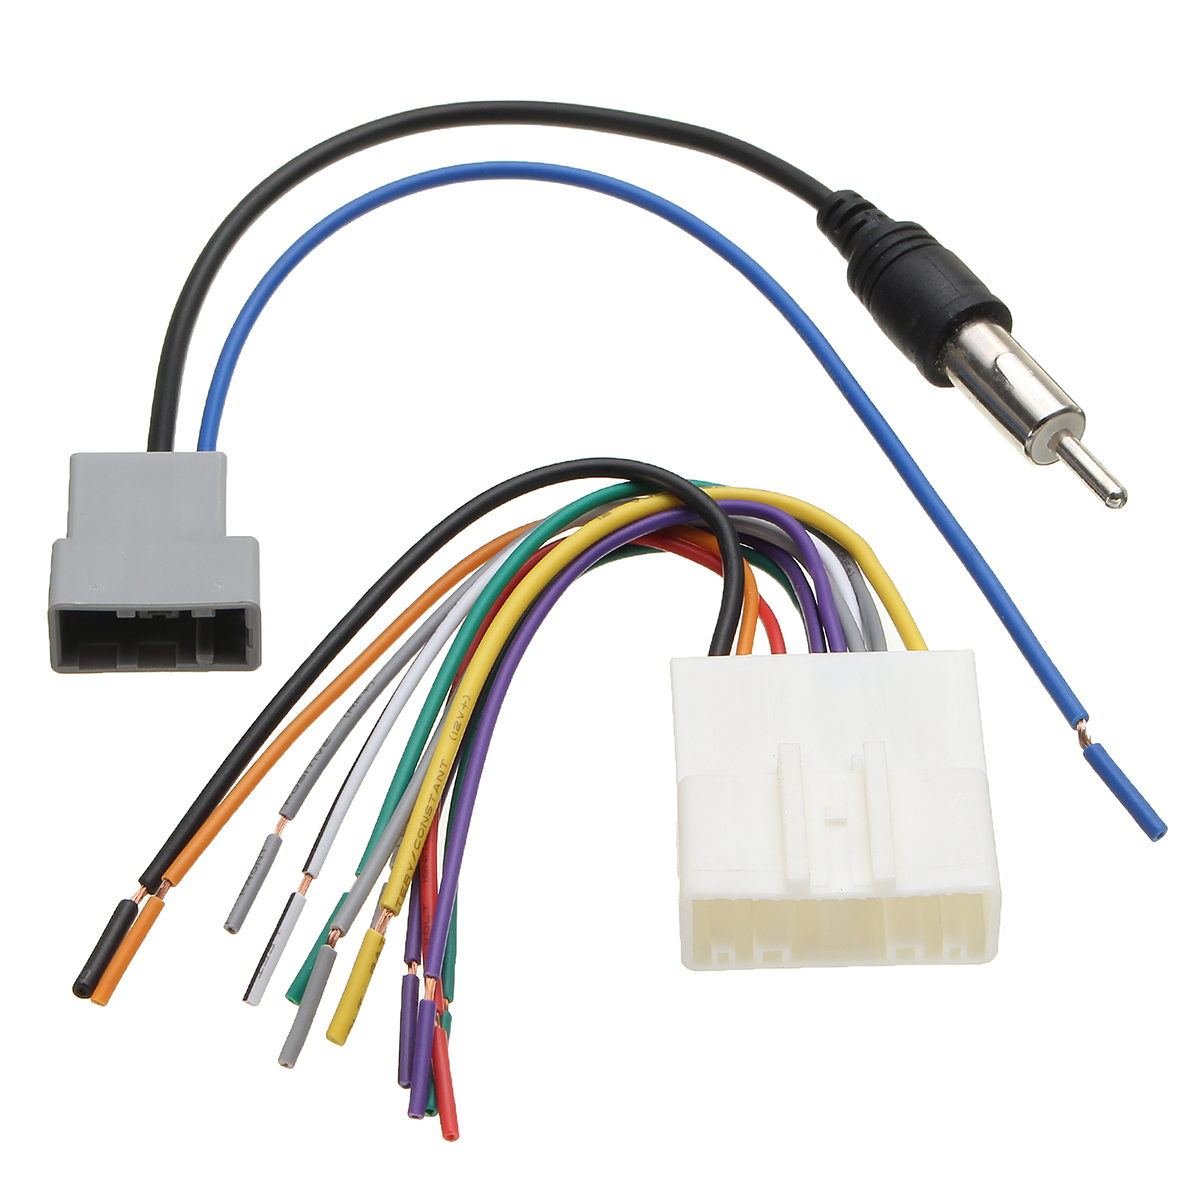 hight resolution of car dvd radio install stereo audio wiring harness cable plugs antenna adapter for nissan 2009